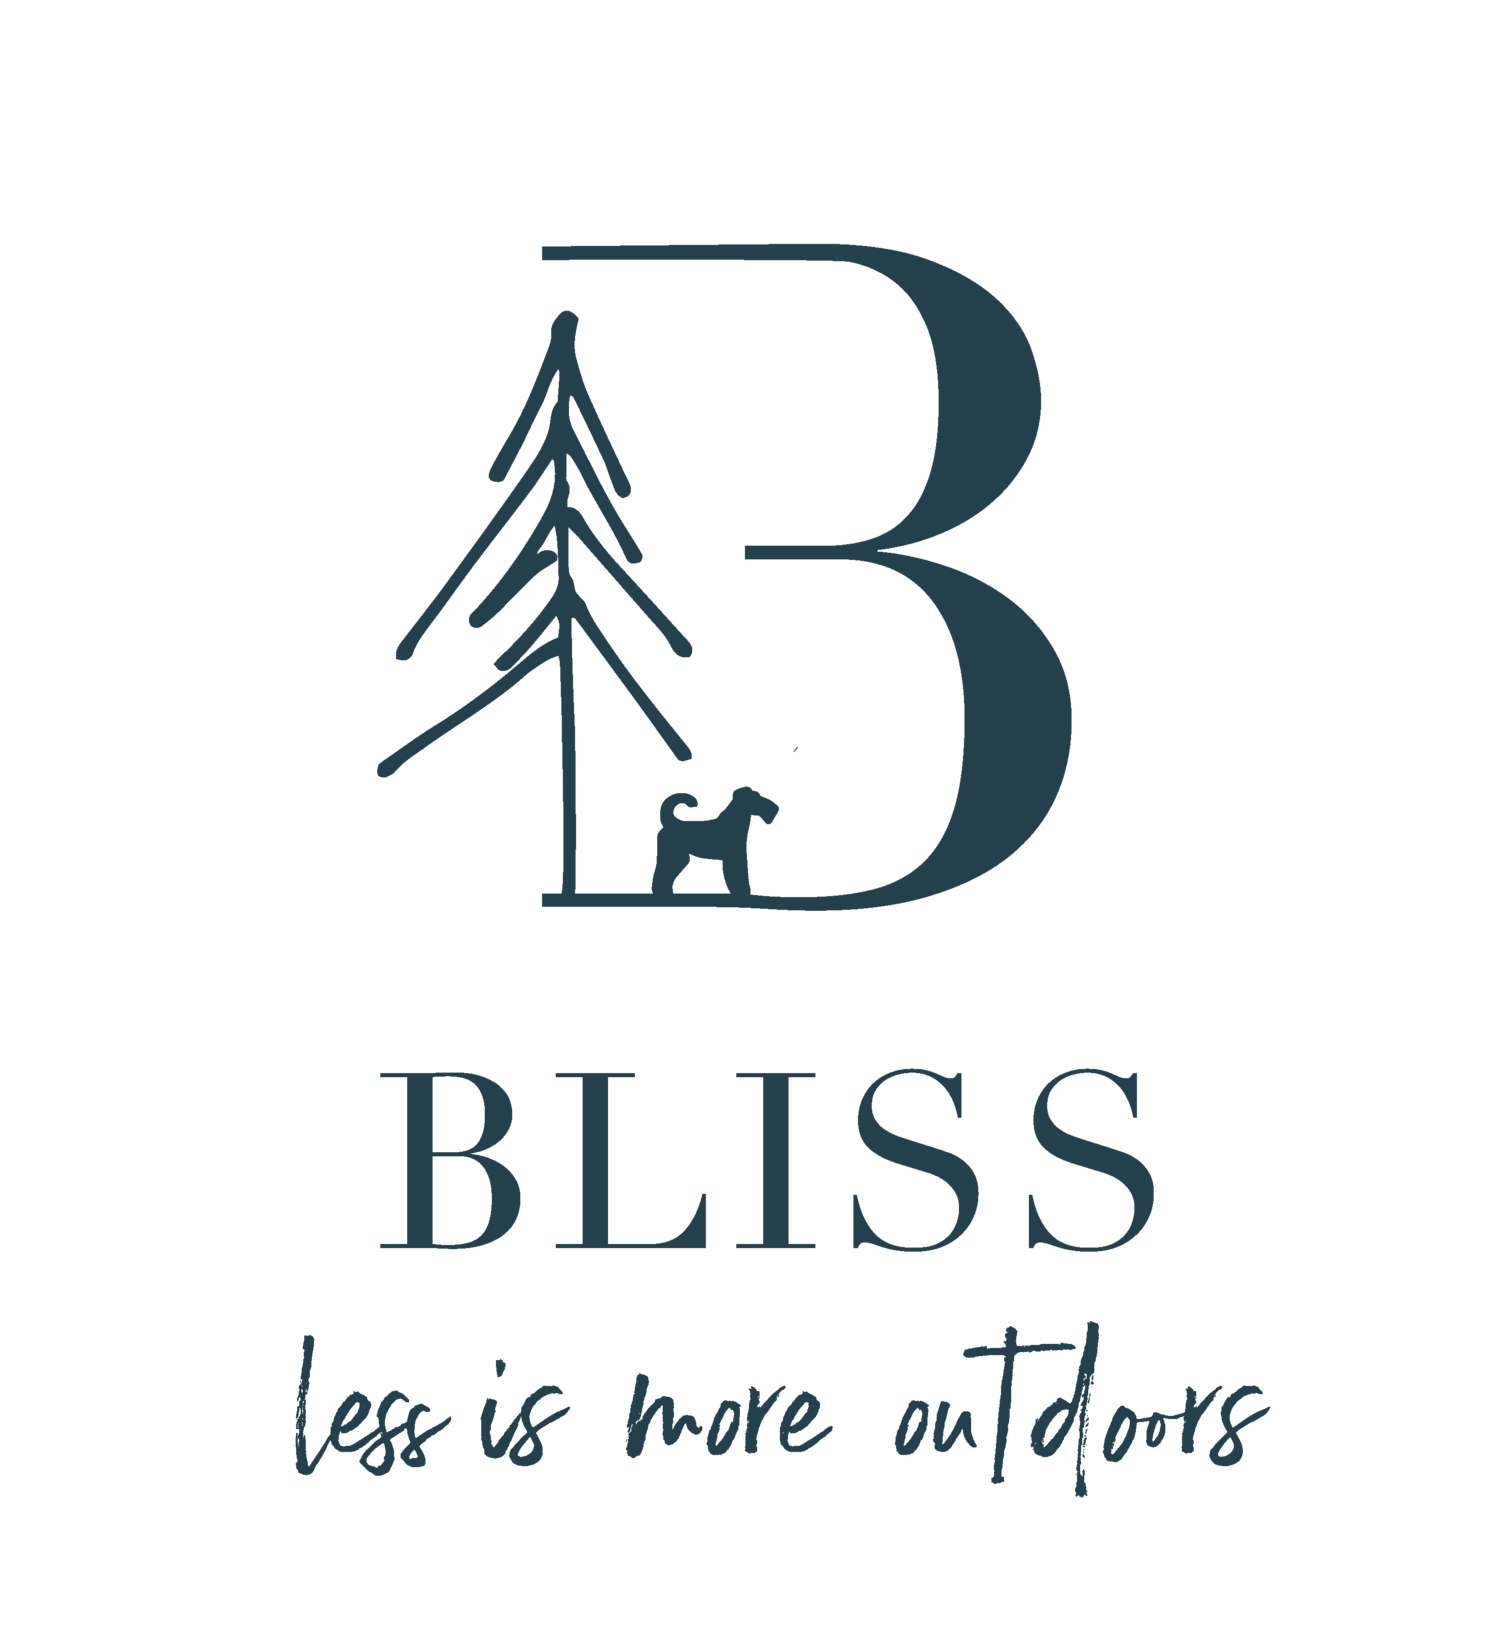 BLISS - less is more outdoors